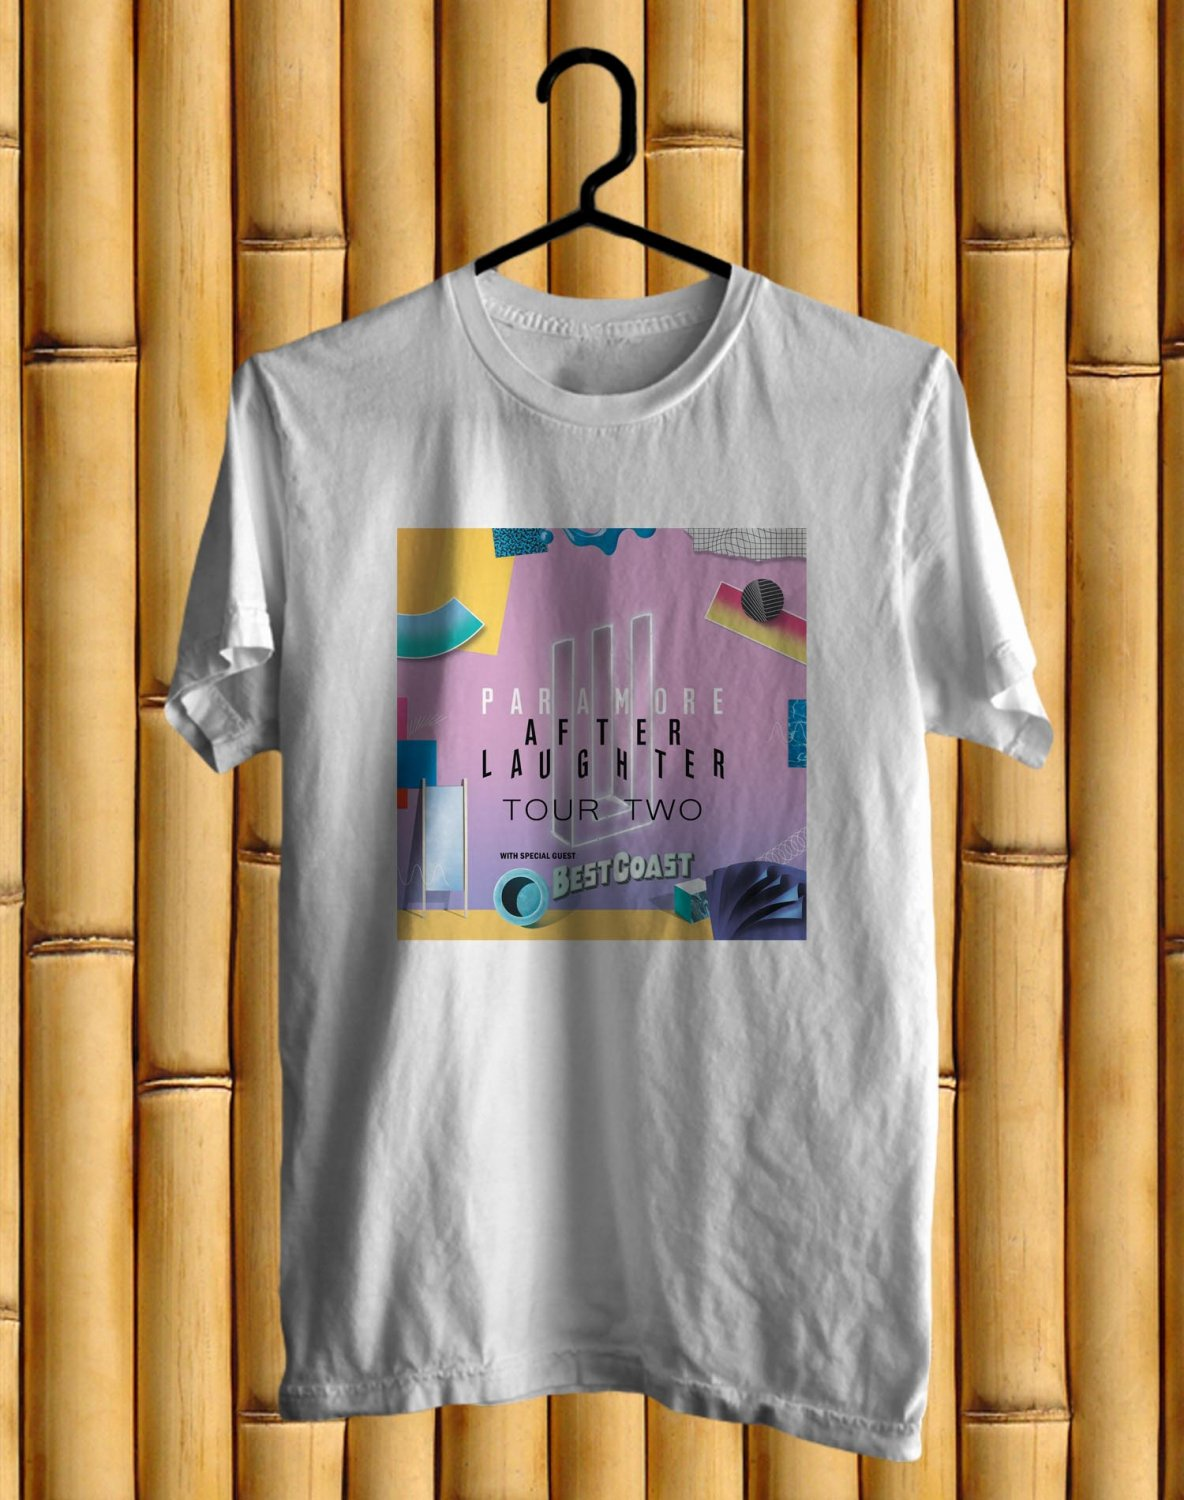 Paramore After Laughter New Album Tour 2017 White Tee's Front Side by Complexart